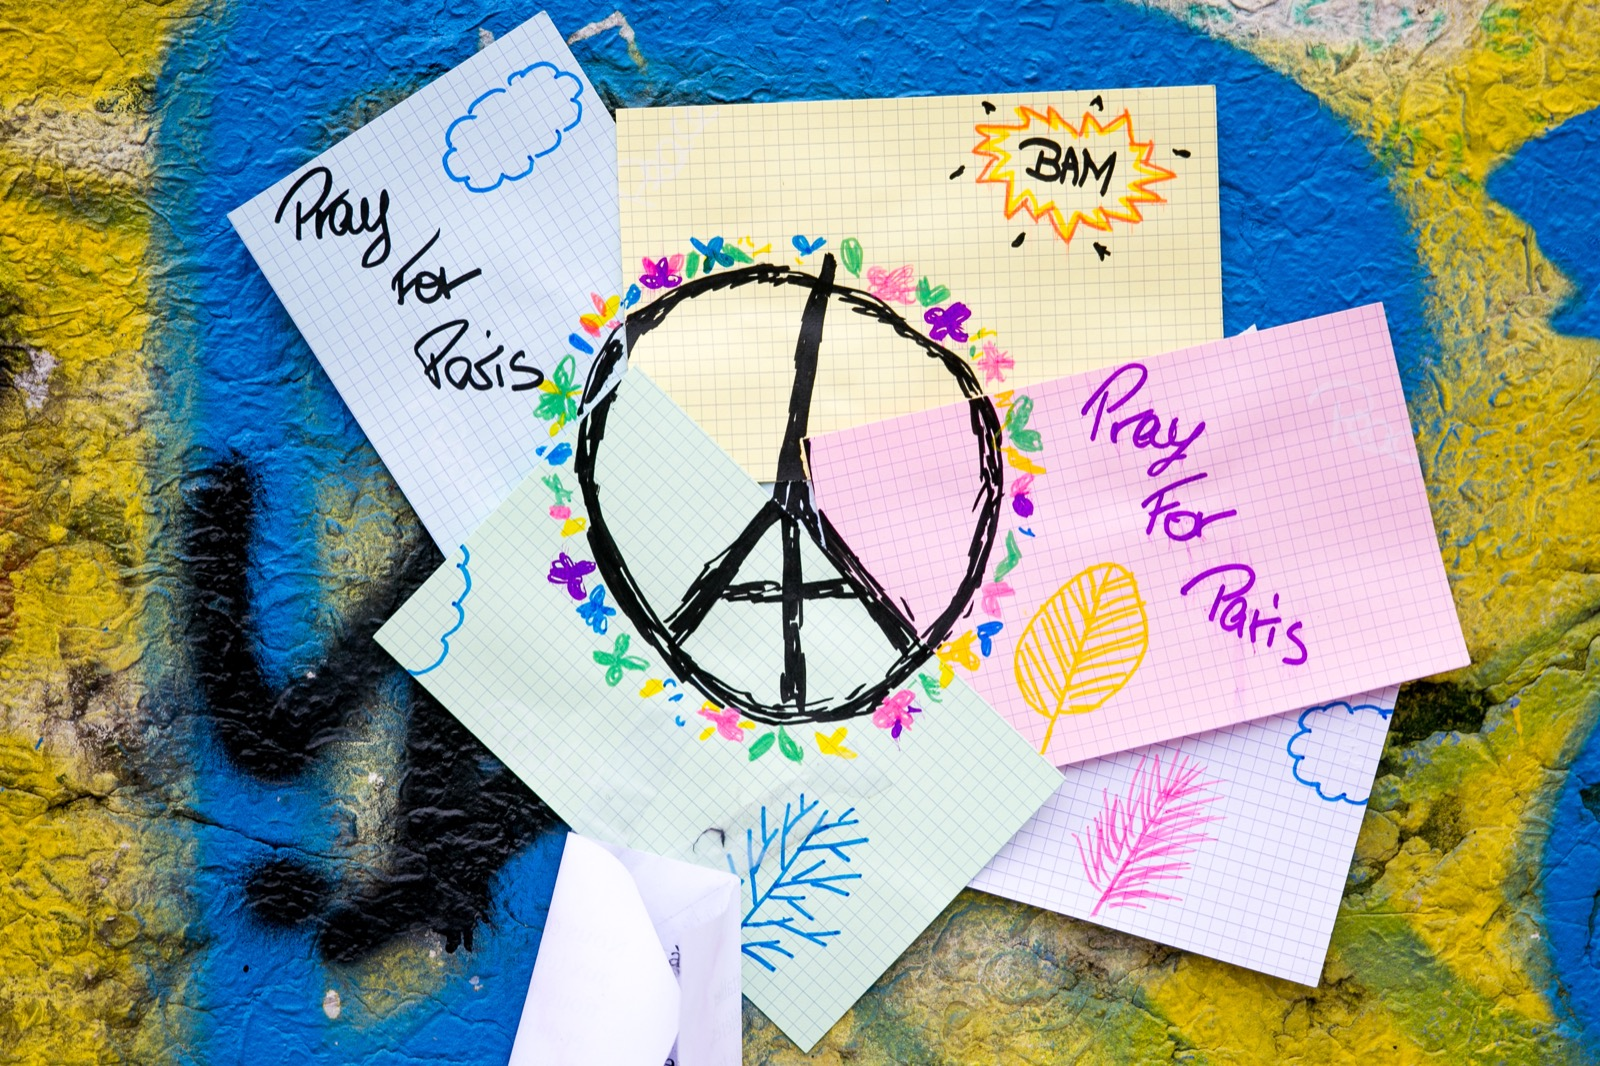 Tributes to the Victims of the Paris Attacks: Pictures